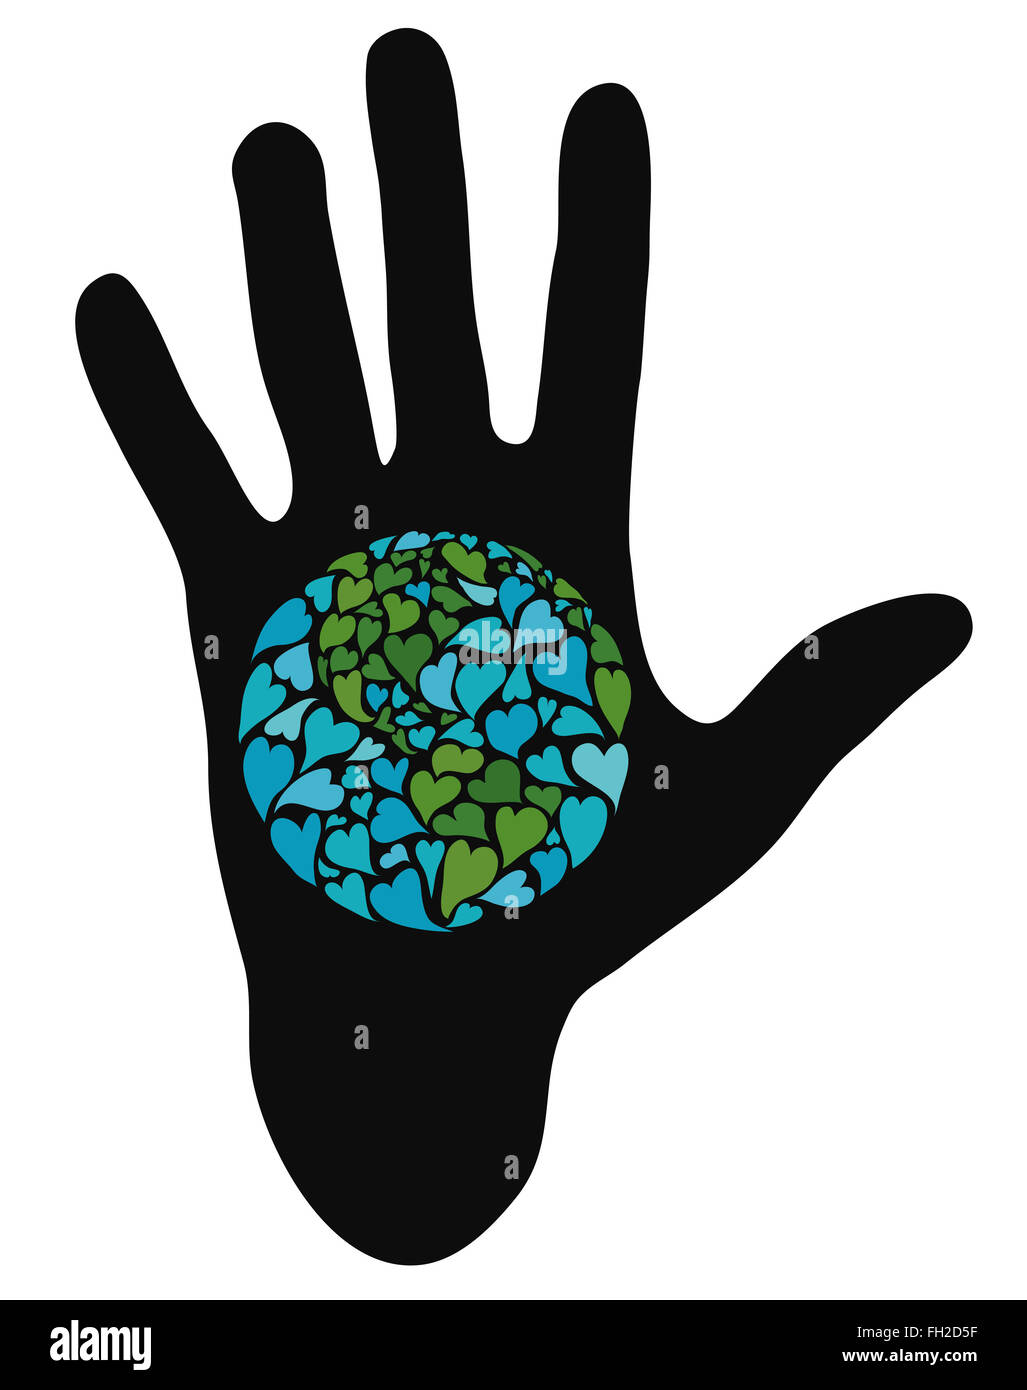 Hand showing planet earth made of hearts. Symbol of peace. America in the center. - Stock Image